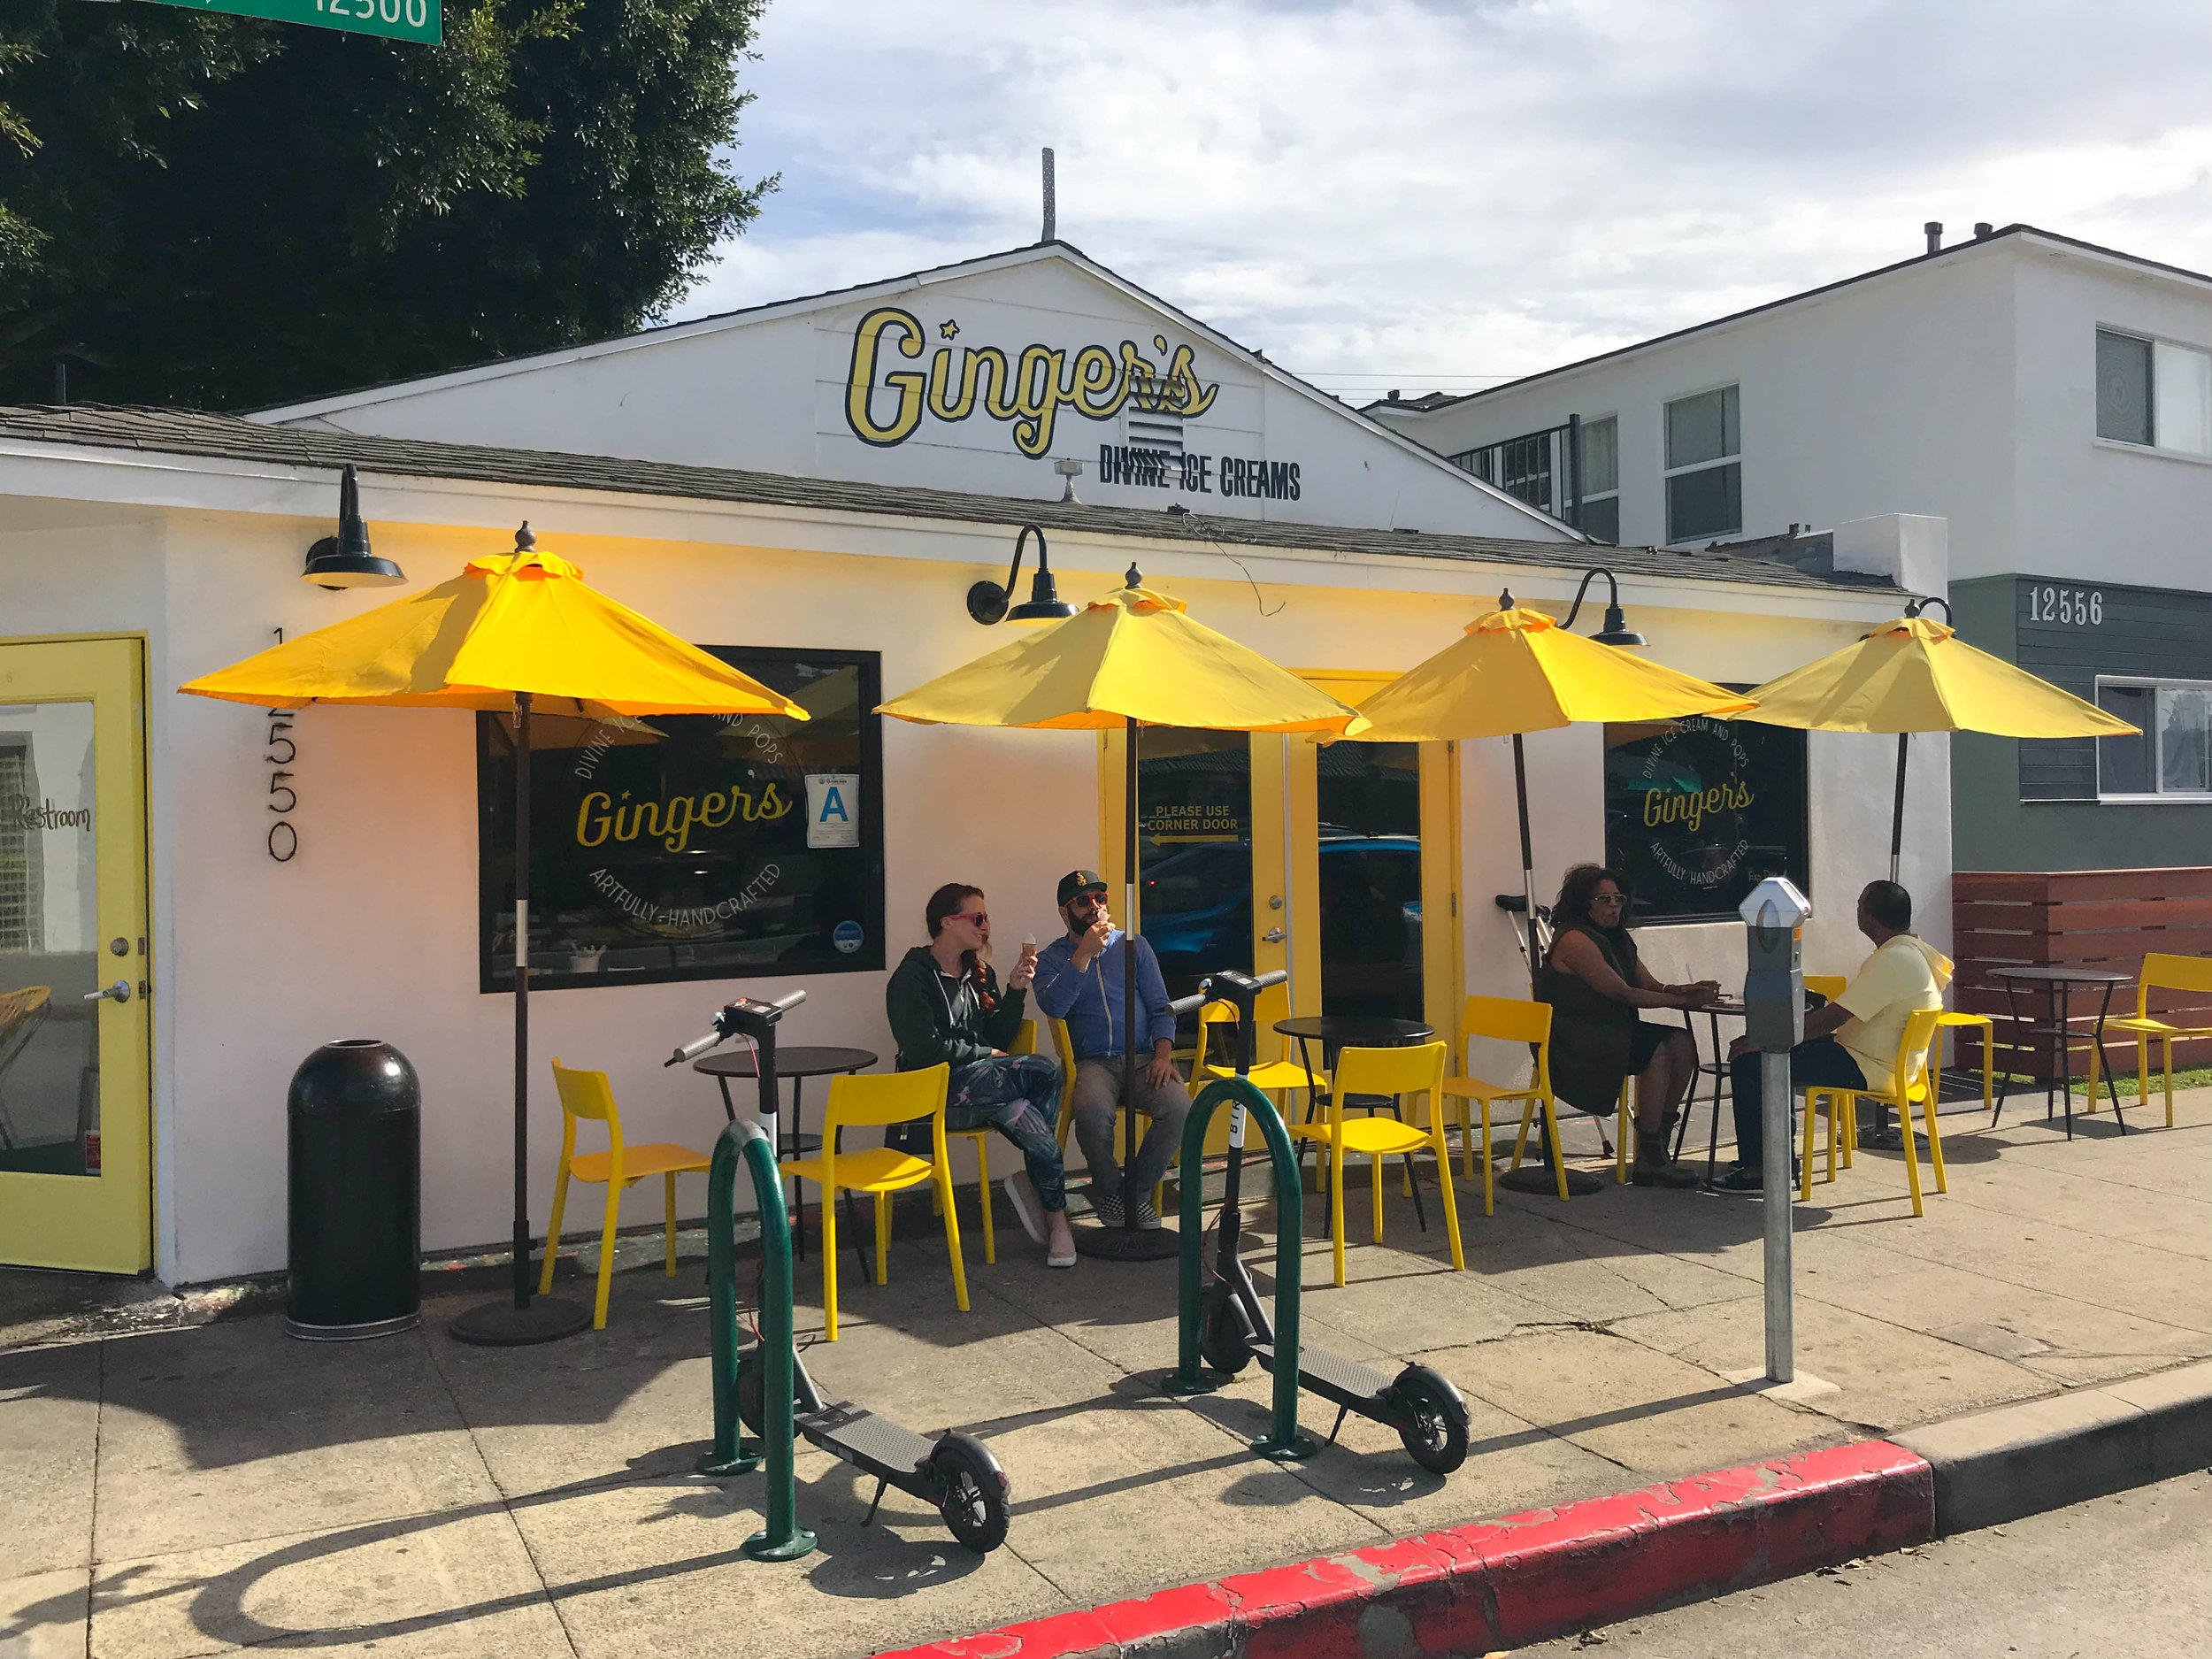 Ginger's Ice Cream Front - love the yellow umbrellas